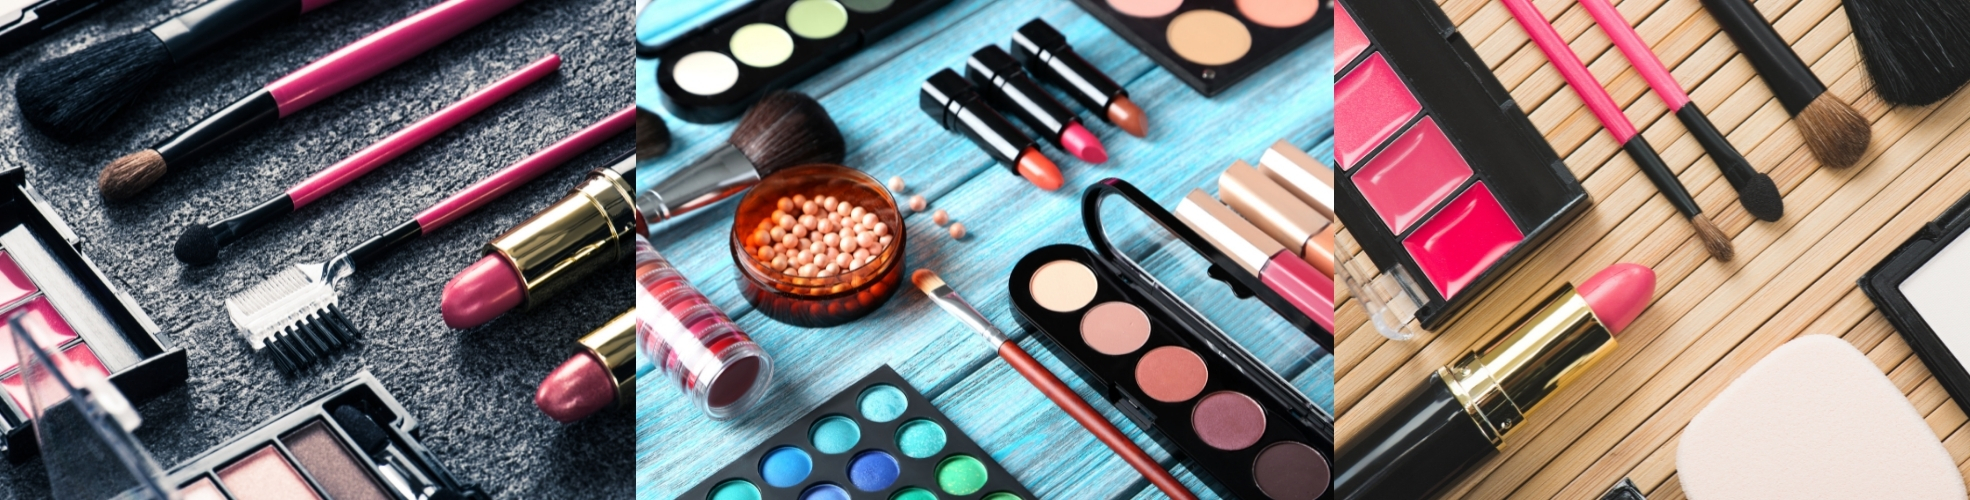 Browse our huge selection of makeup, cosmetics and fragrances with over 50 brands to choose from.